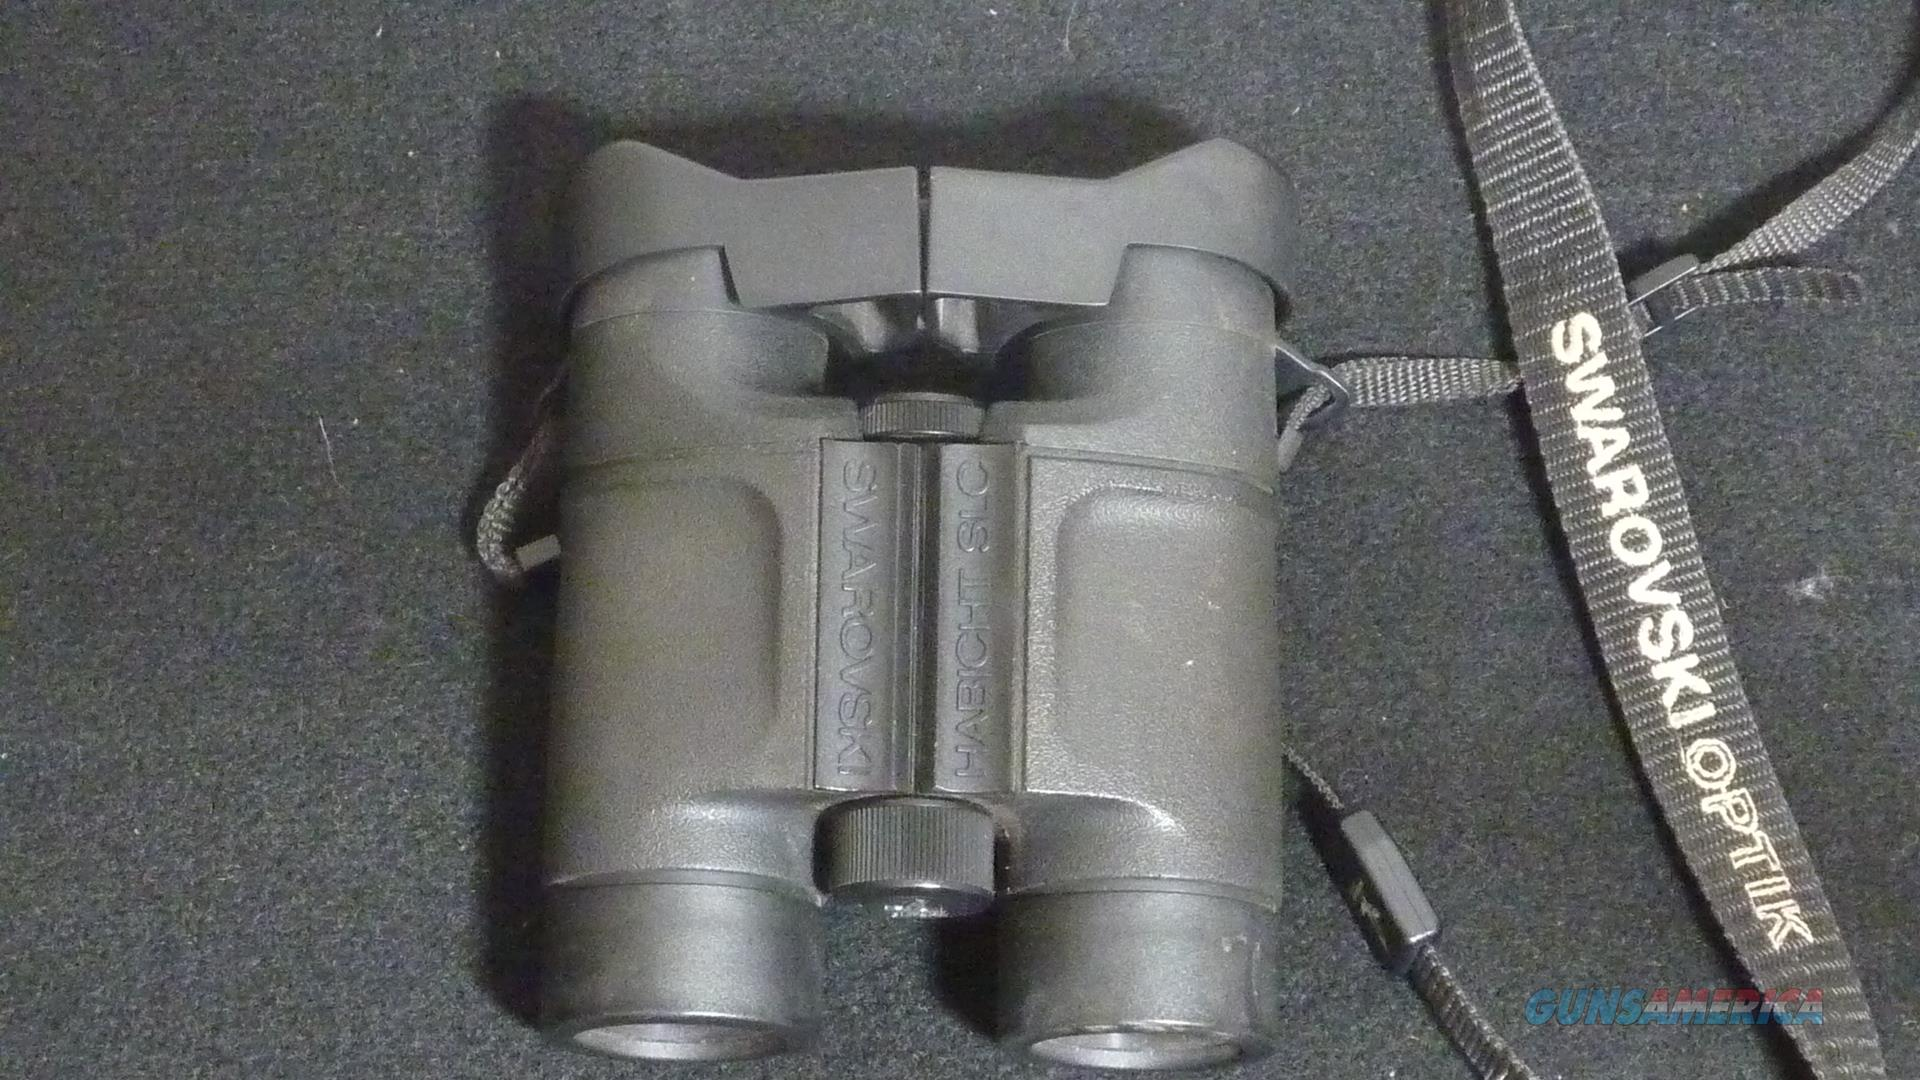 Swarovski 8x30 WB binoculars  Non-Guns > Scopes/Mounts/Rings & Optics > Non-Scope Optics > Binoculars